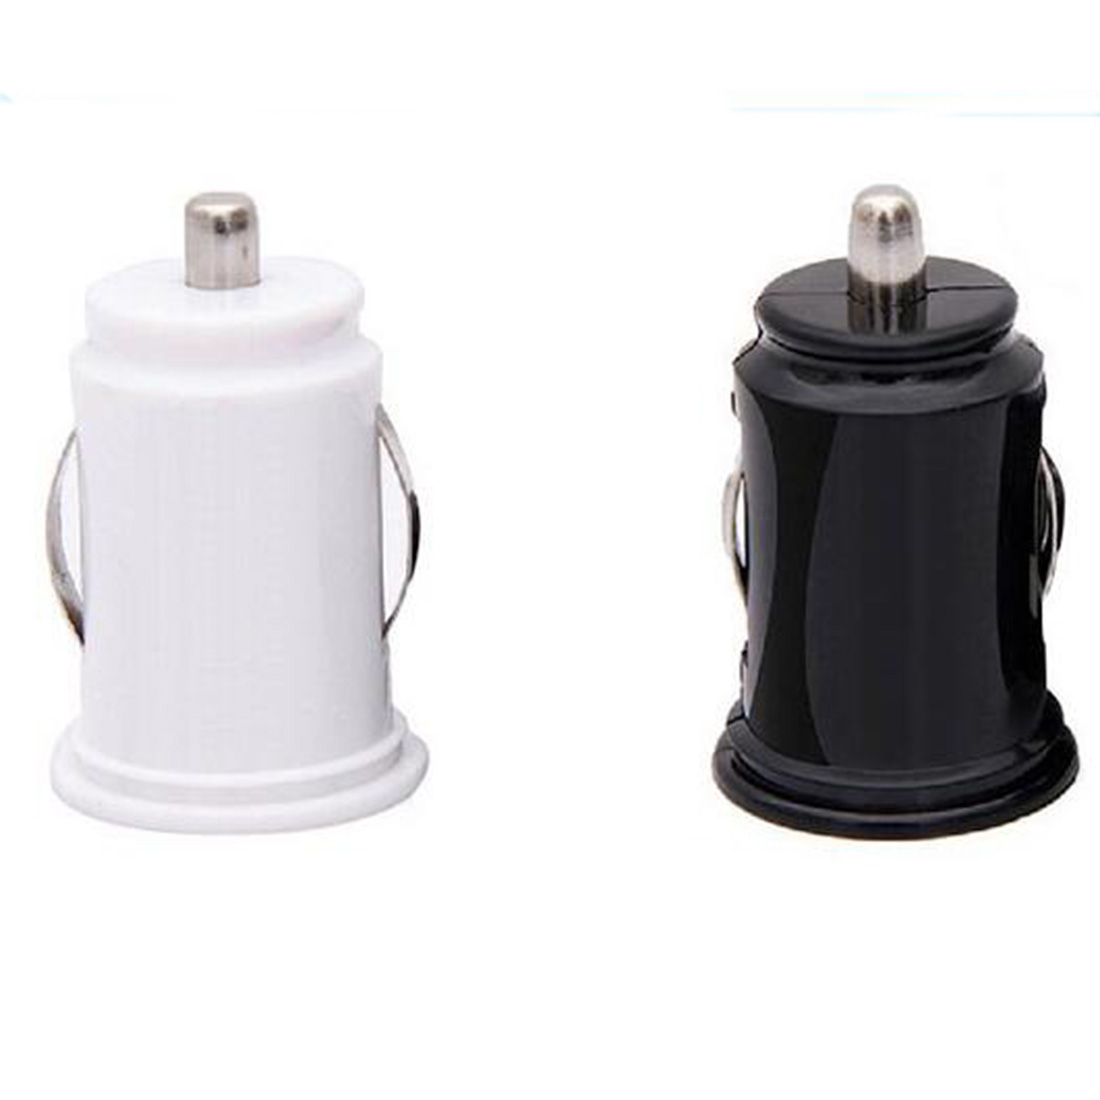 2.1A 5V Dual USB car charger 2 port Cigarette Lighter Adapter Charger USB Power Adapter For all smart phones Dewtreetali